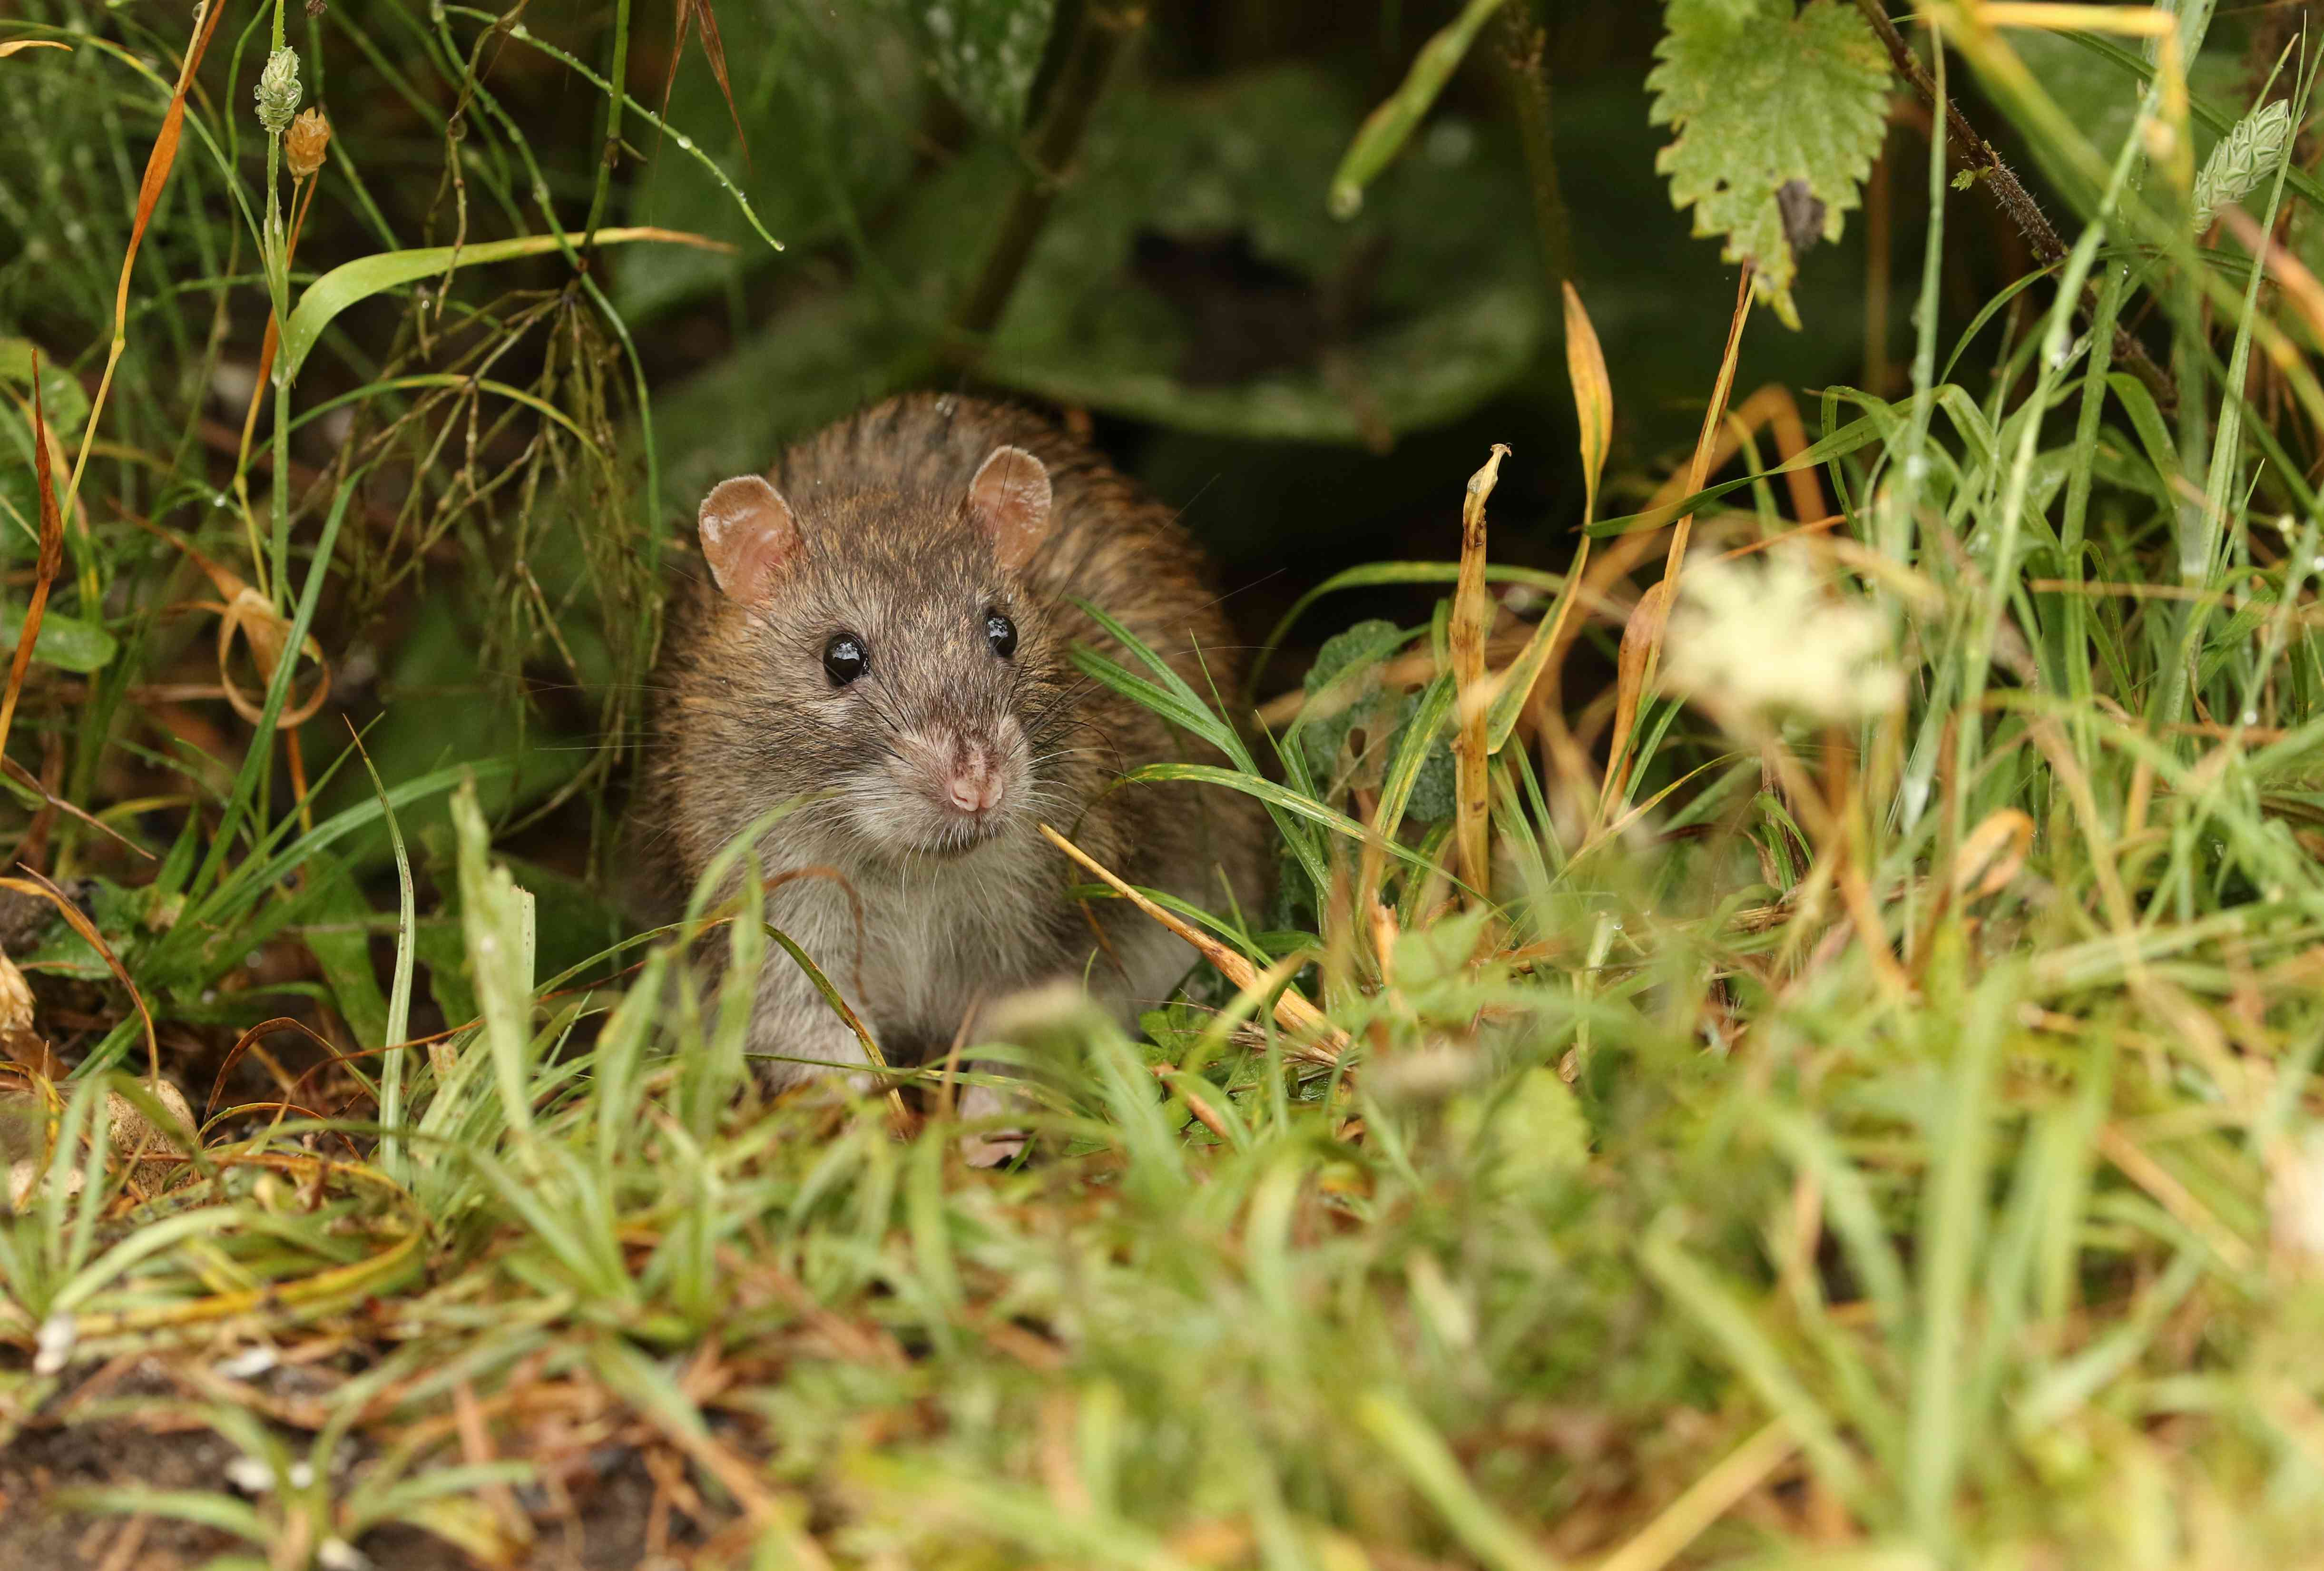 A wild Brown Rat, Rattus norvegicus, eating seeds on the ground at the edge of a lake.